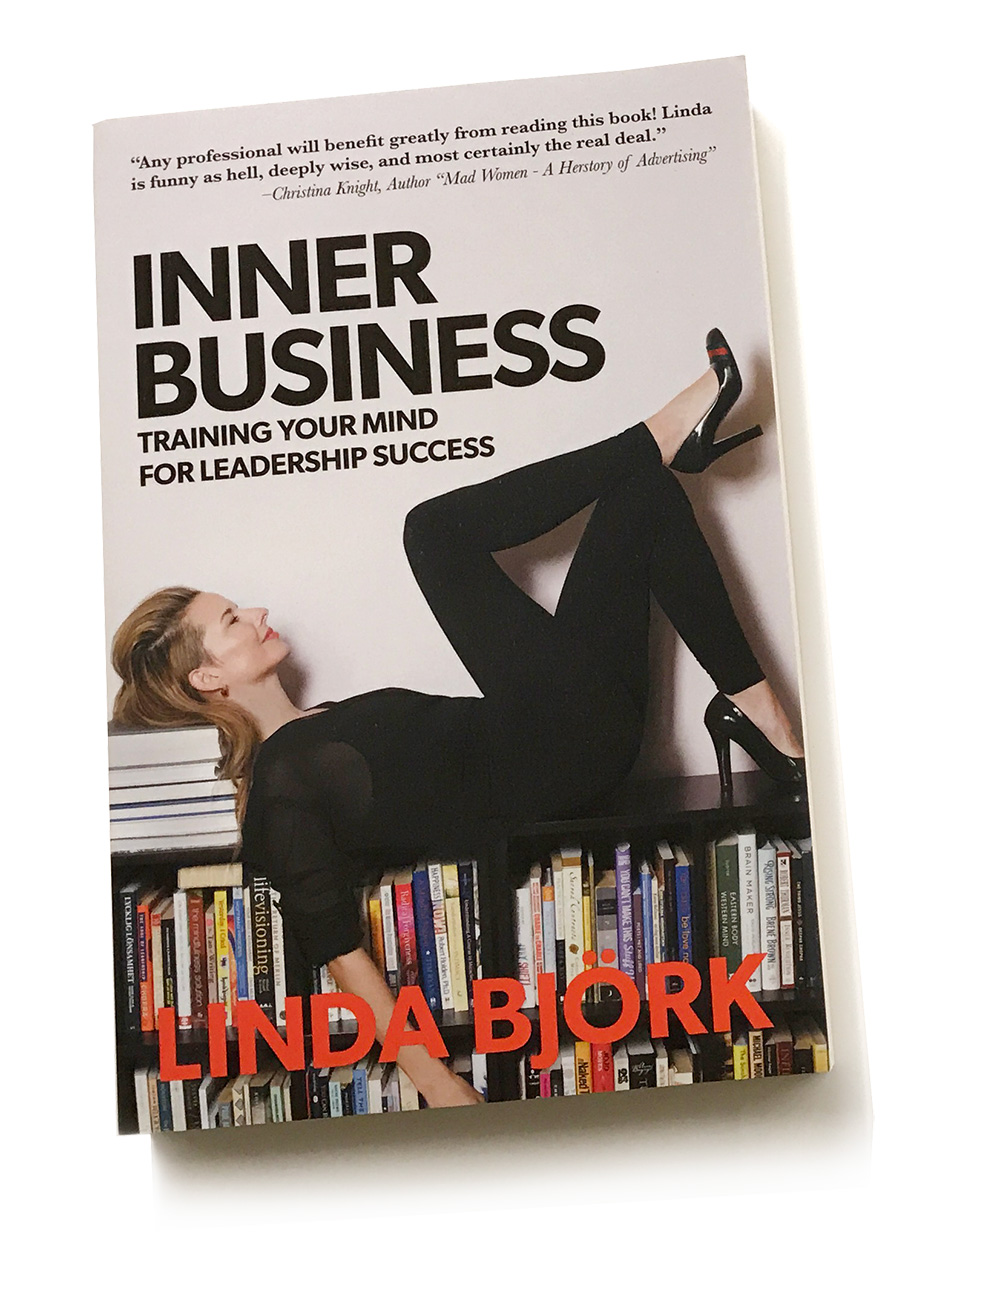 innerbusiness-book-on-white.jpg